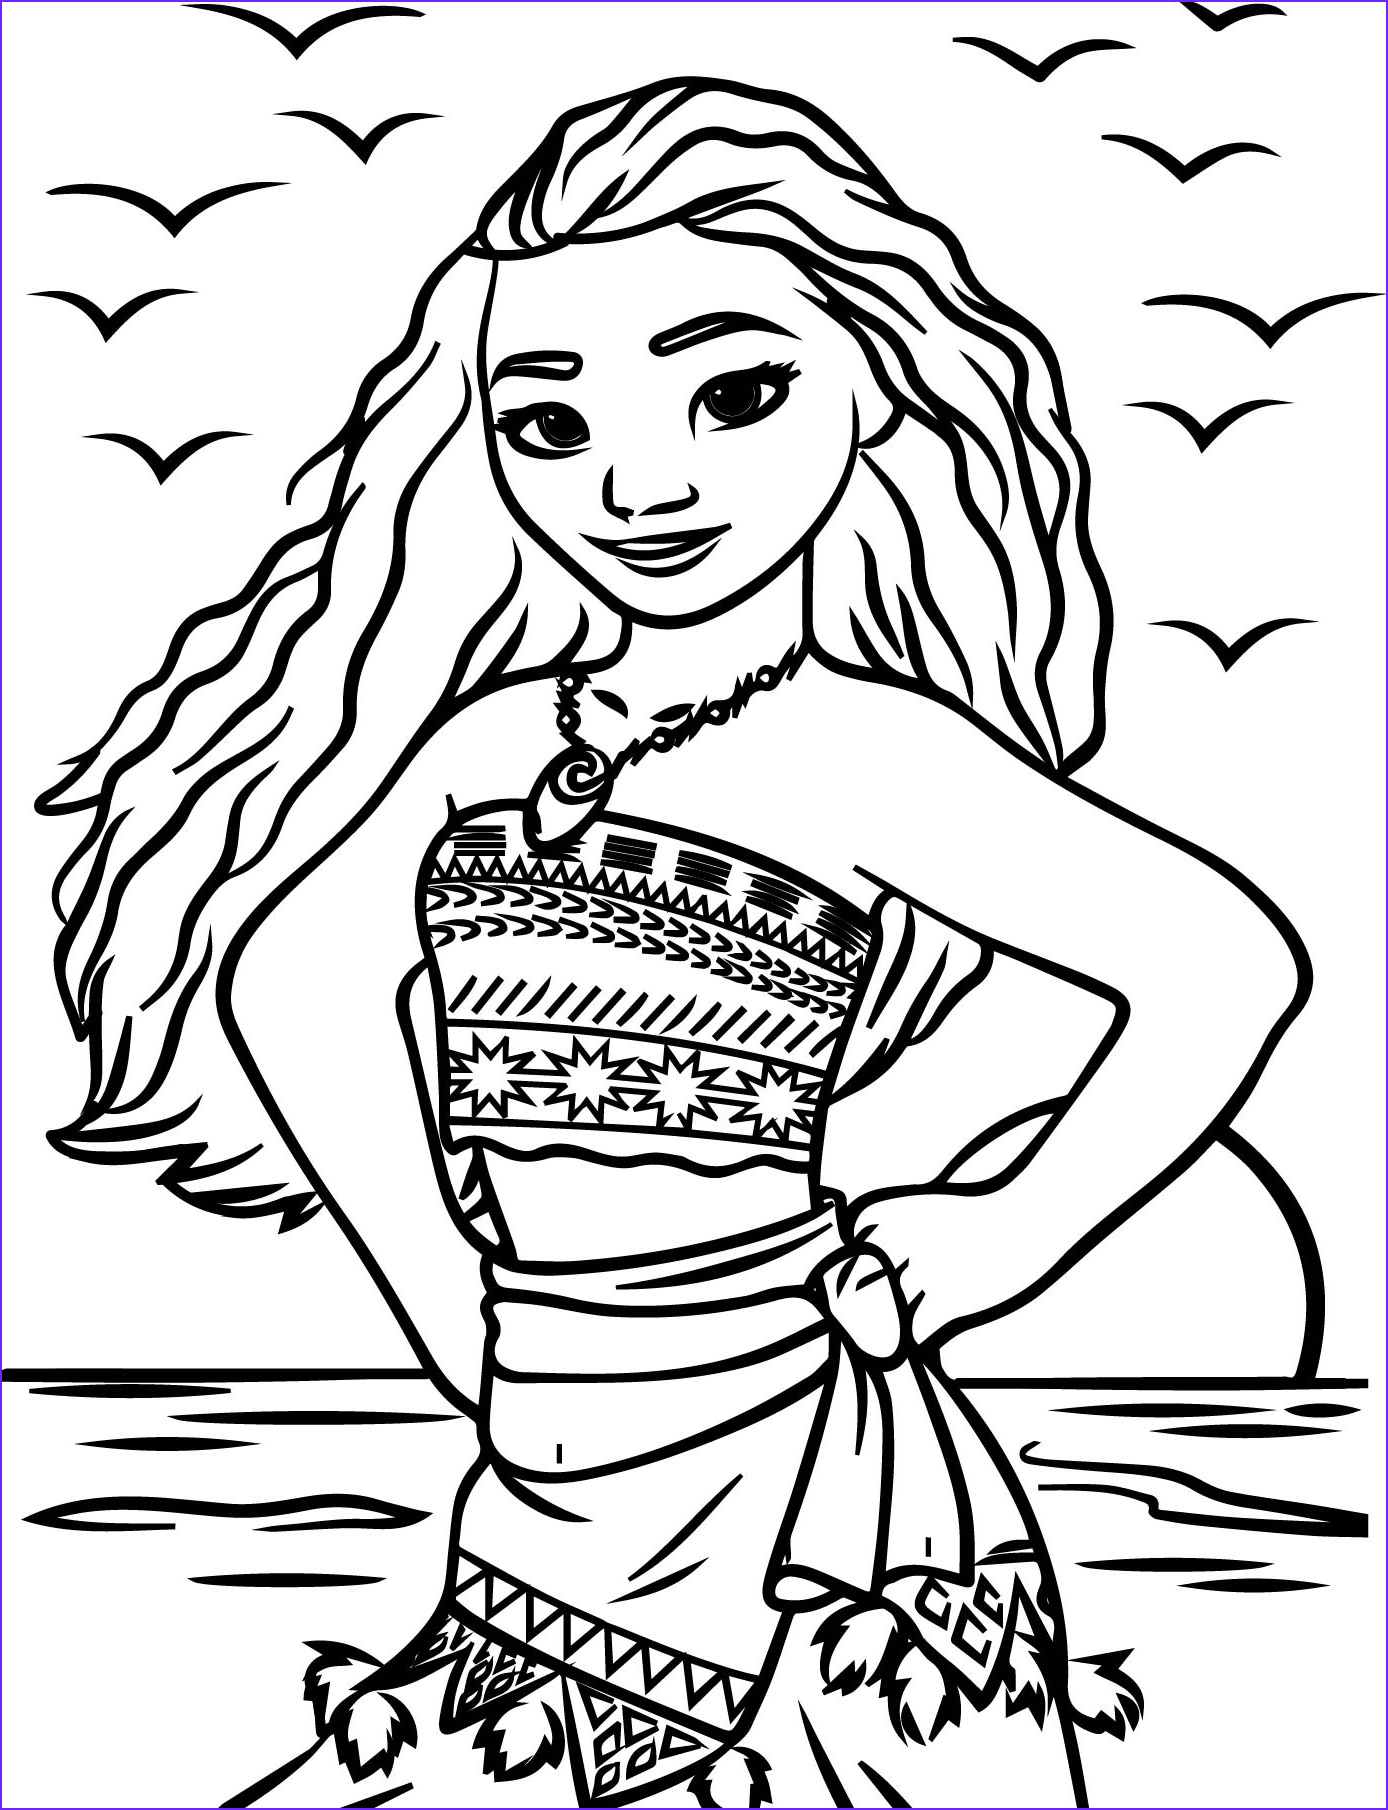 Moana Coloring Page Printable Luxury Photography Disney Moana Coloring Page